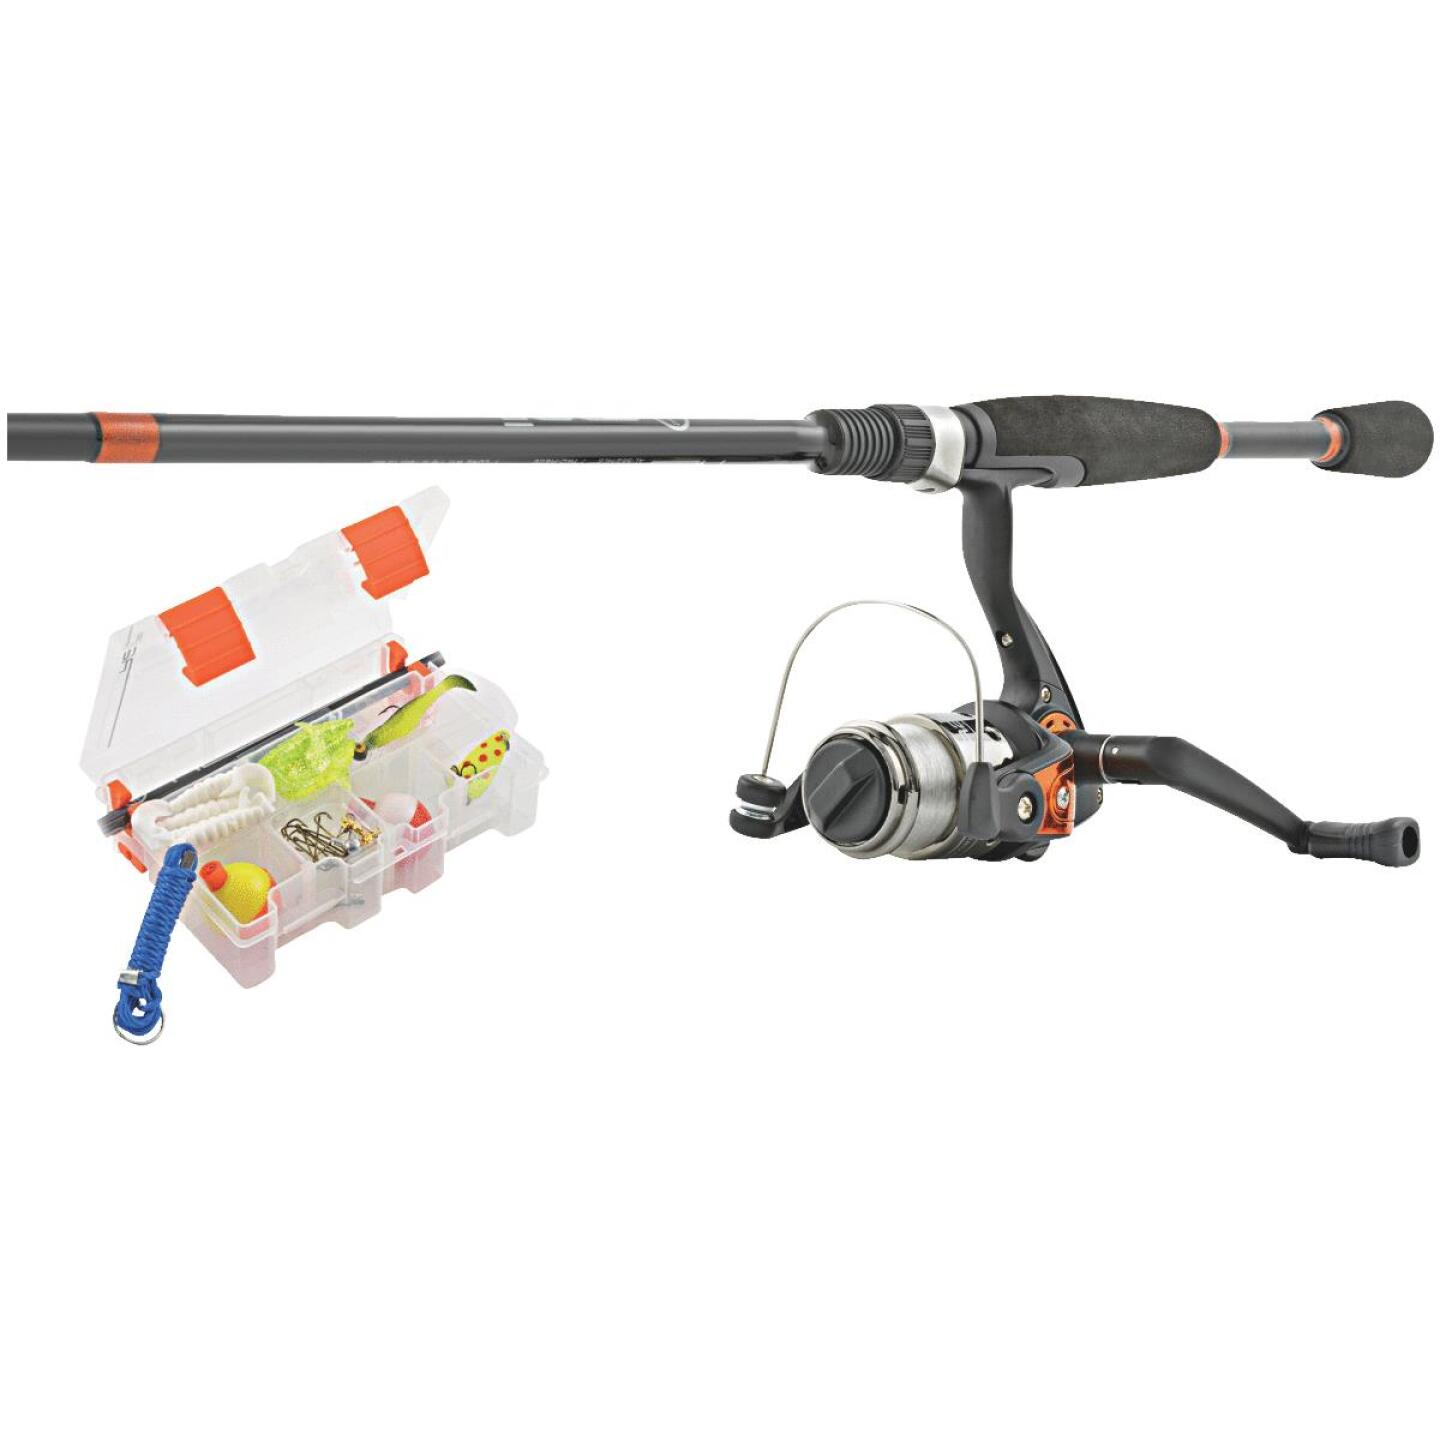 SouthBend Ready 2 Fish All Species 5 Ft. Fiberglass Fishing Rod & Spinning Reel Combo Image 1